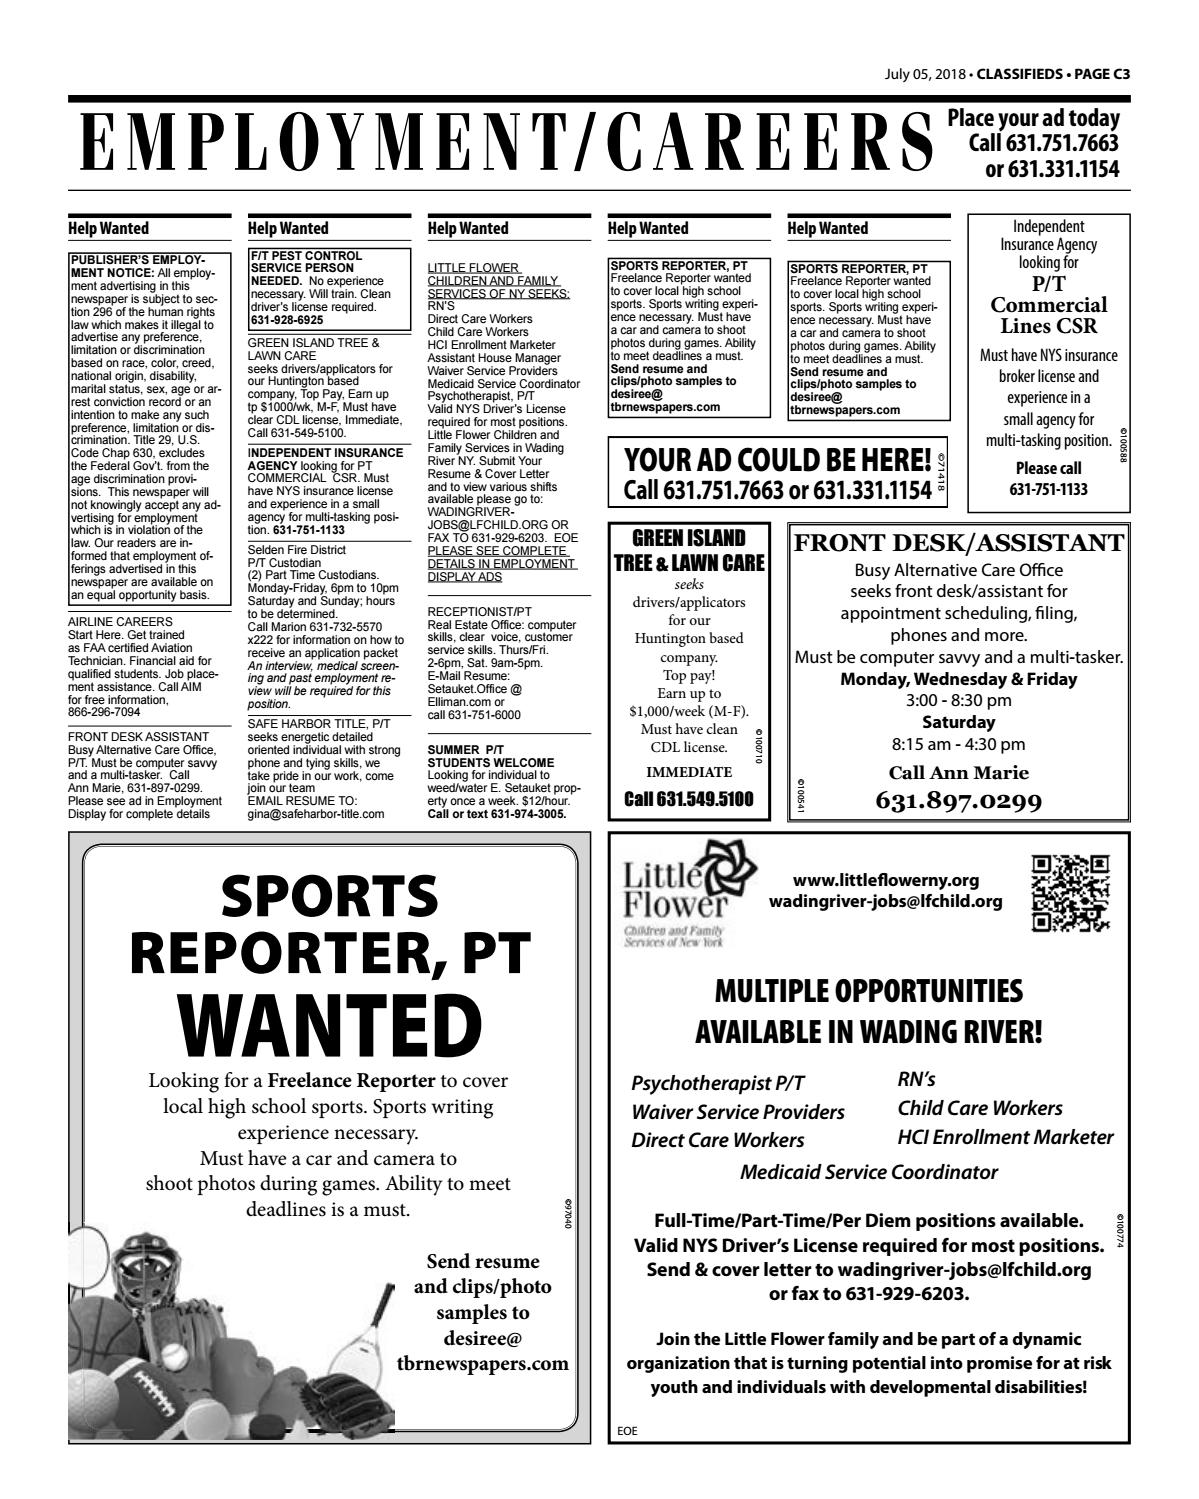 Employment/Careers - July 5, 2018 by TBR News Media - issuu